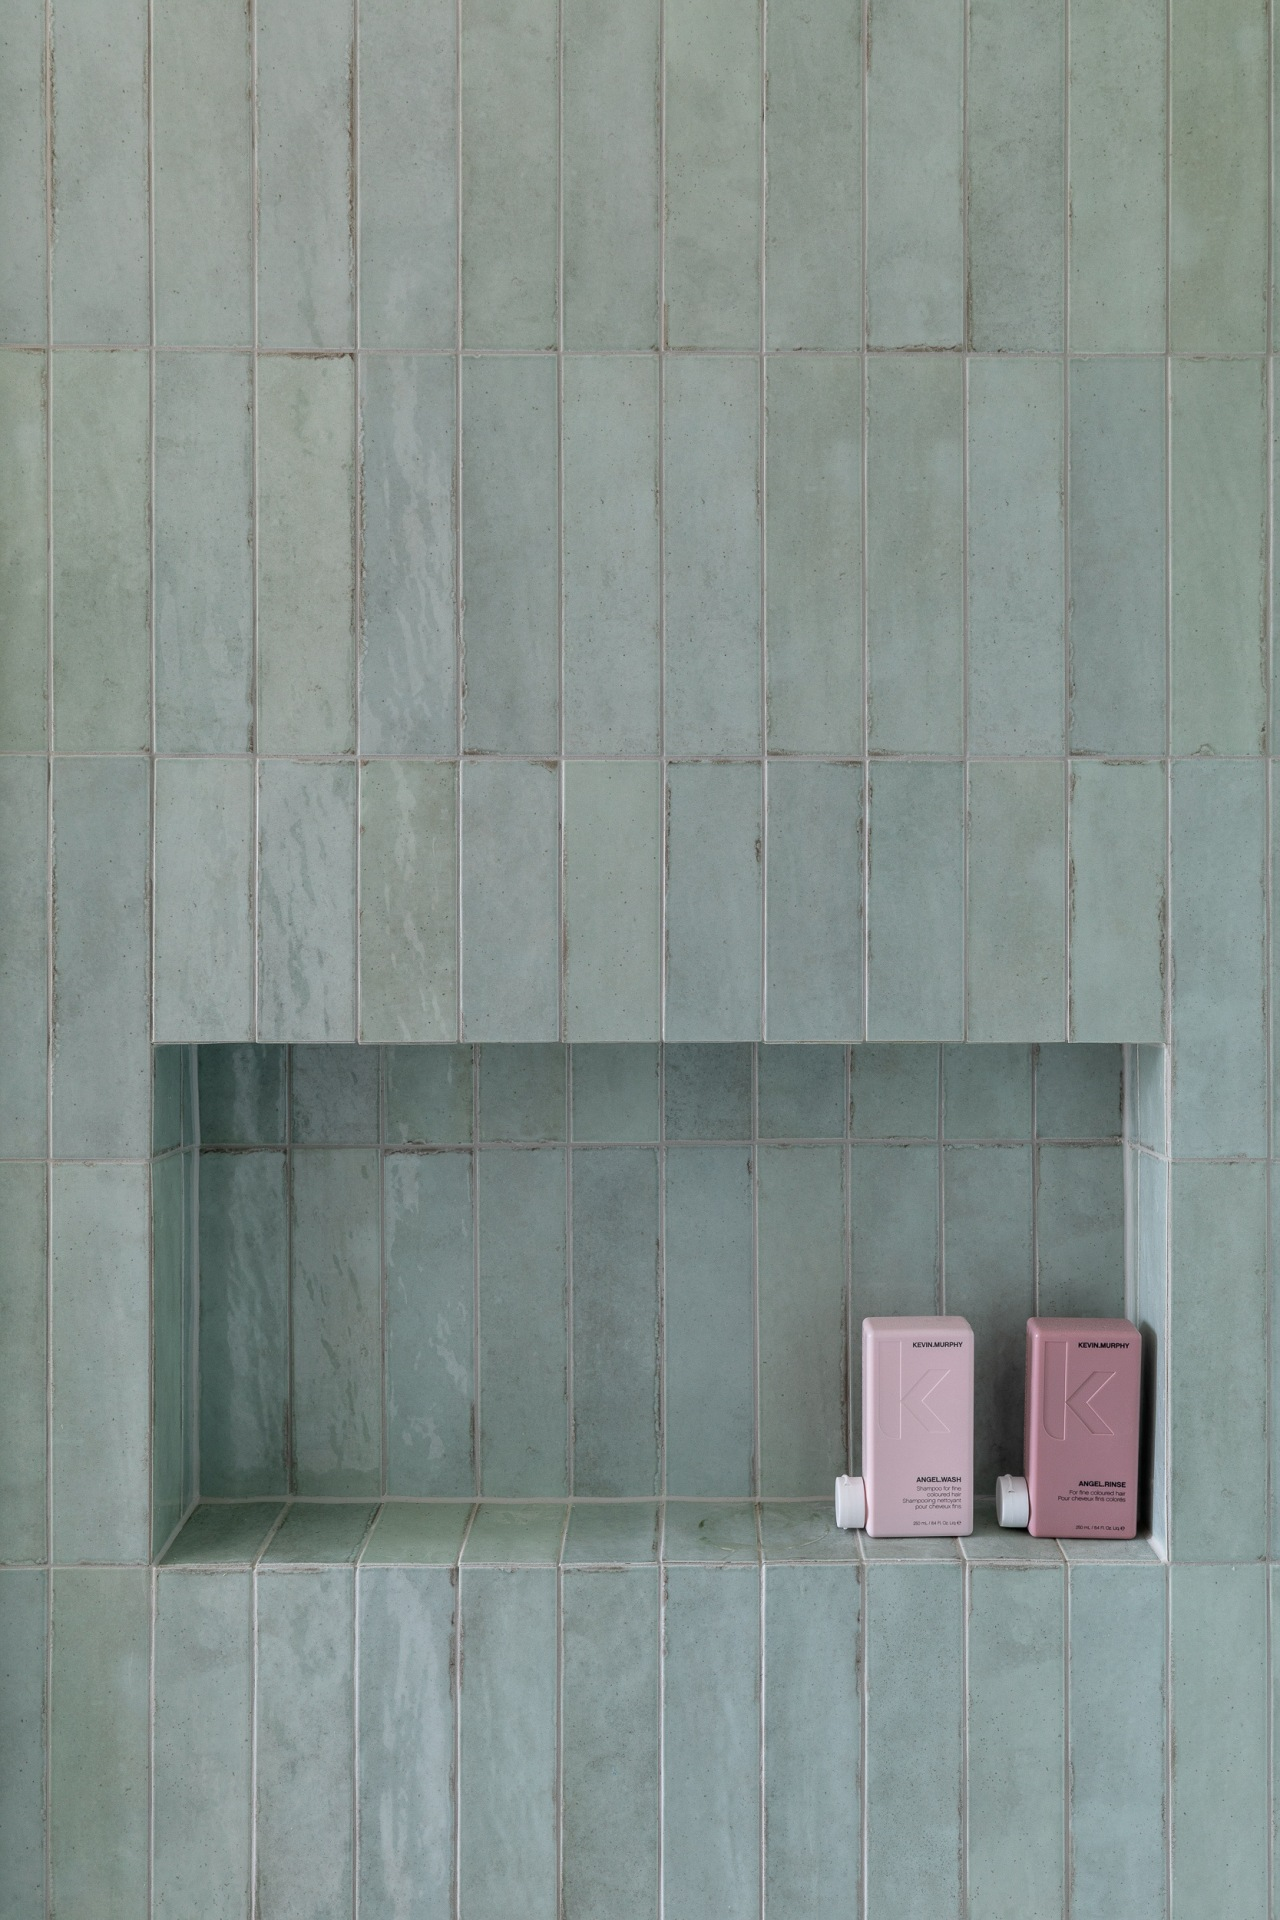 The edgy Tribeca Seaglass Mint subway tile has